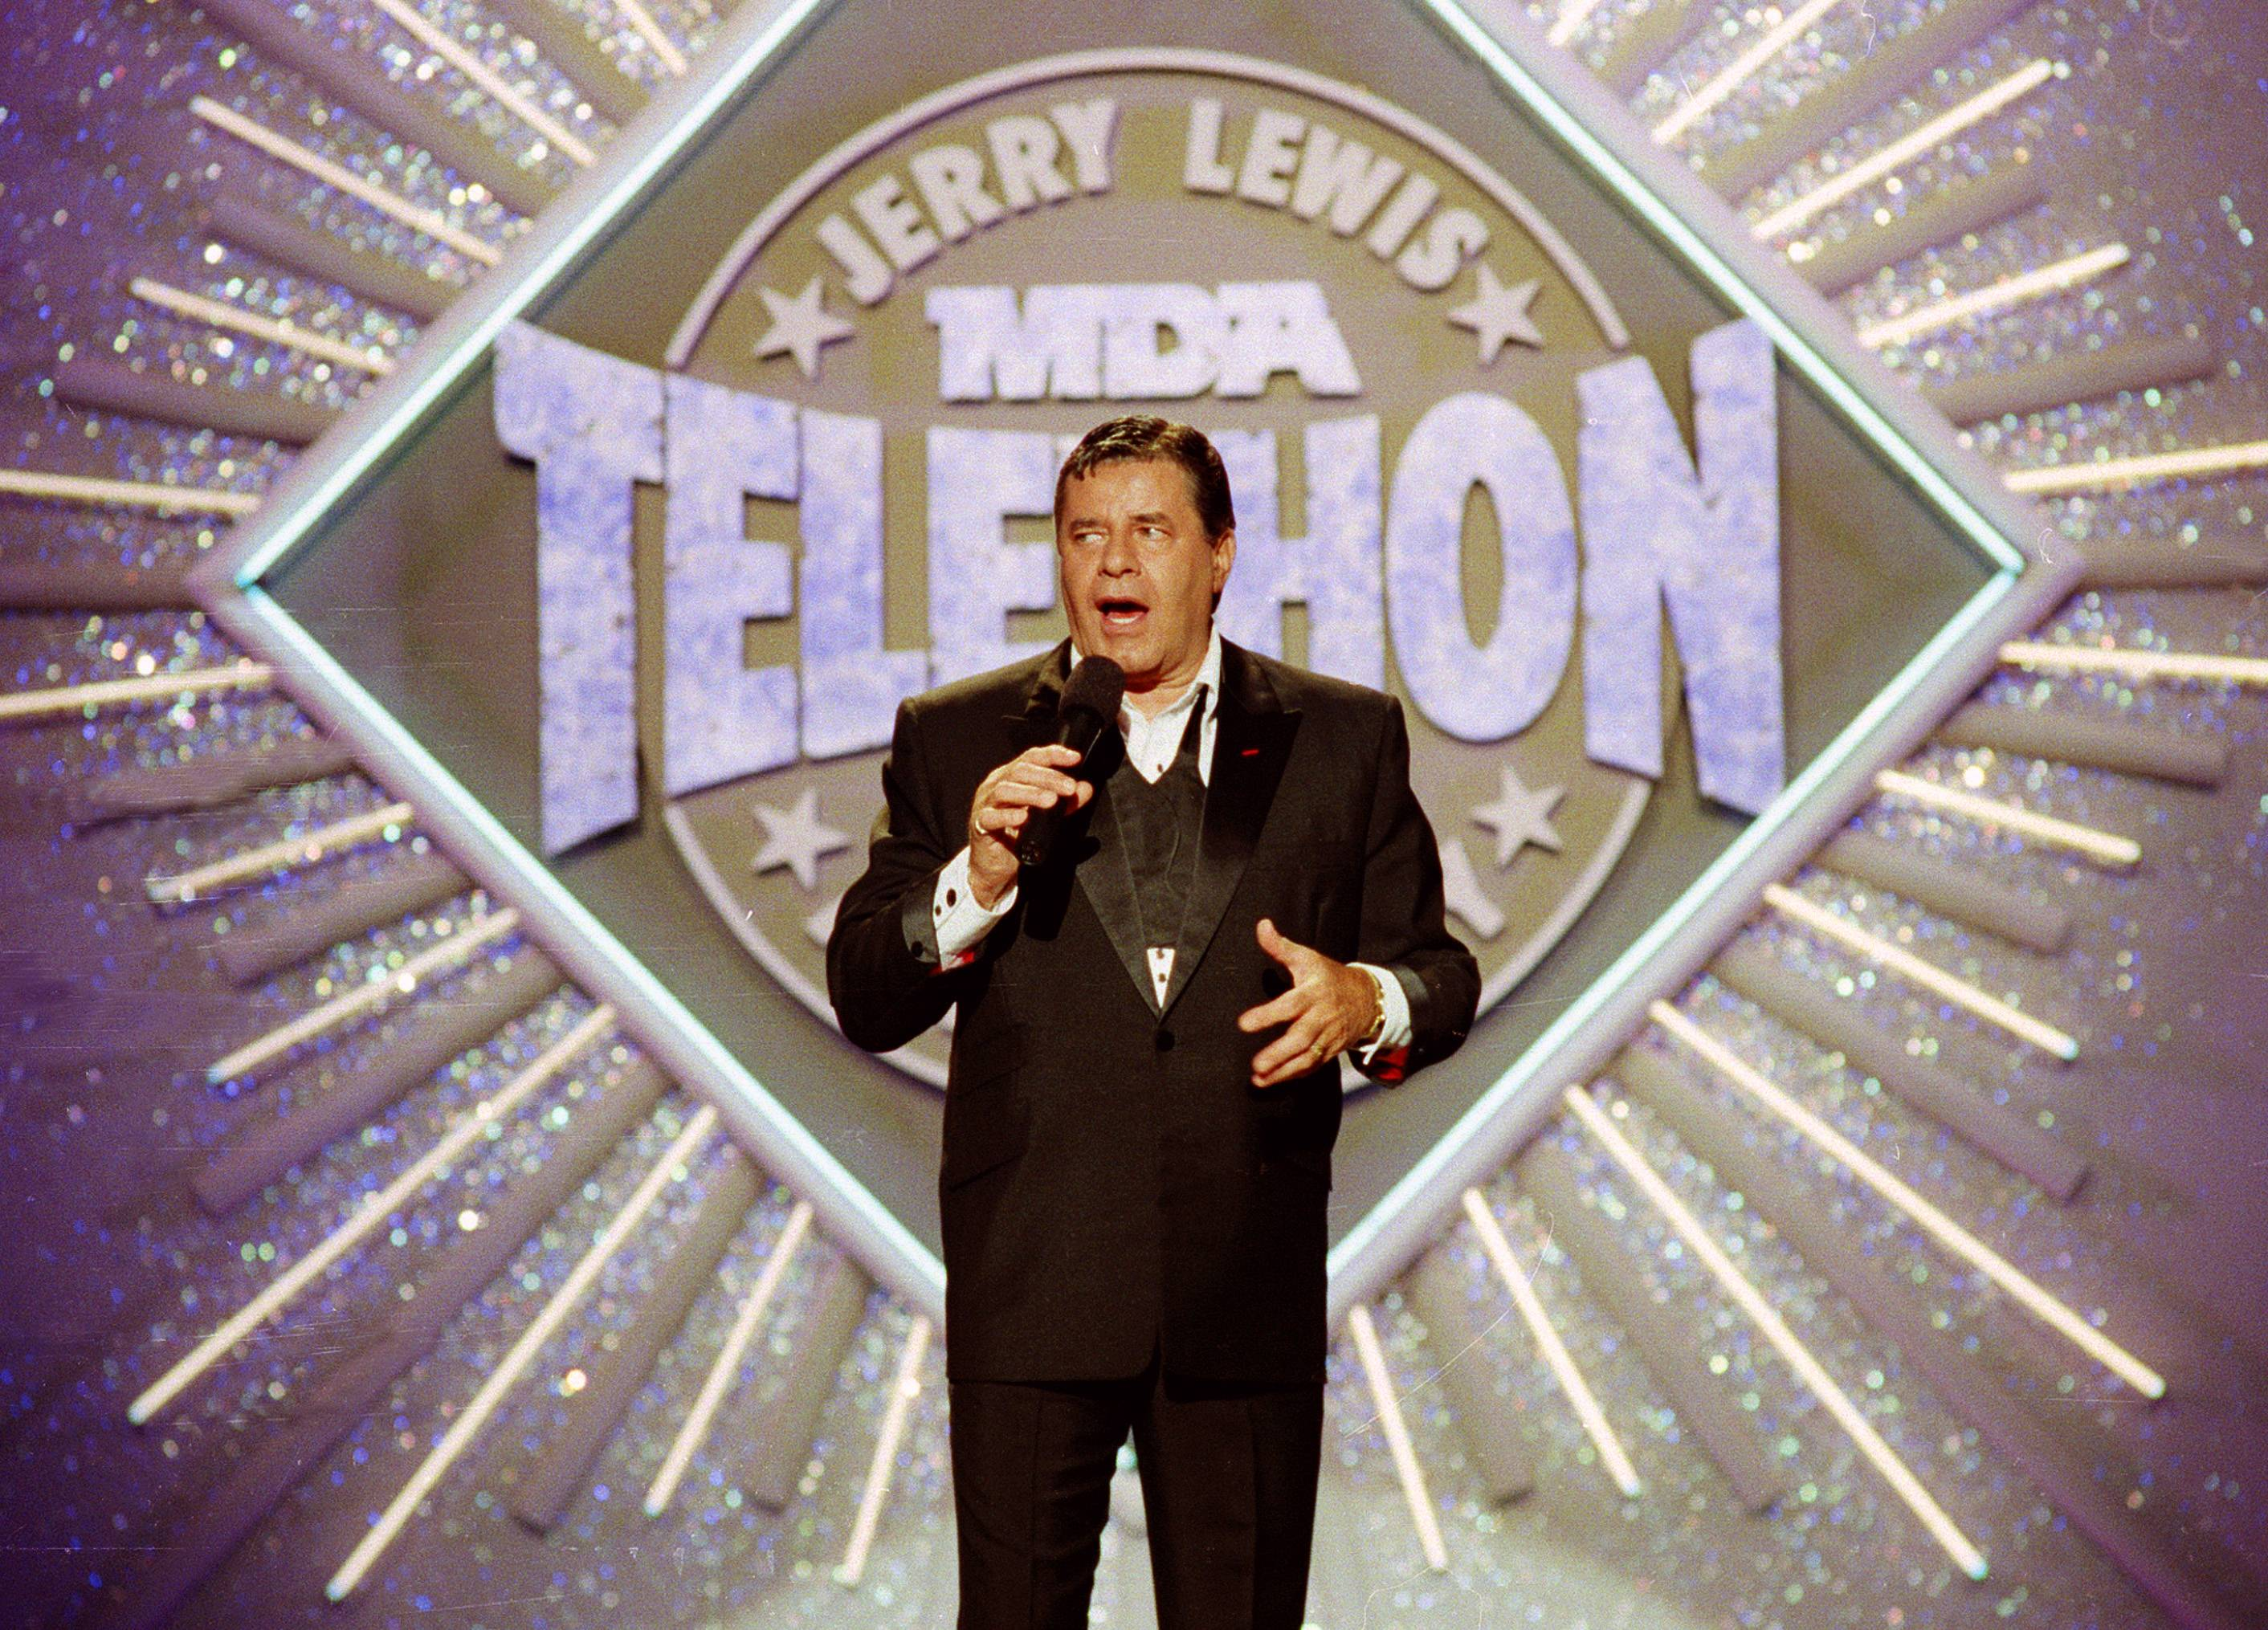 Entertainer Jerry Lewis makes his opening remarks in 1990 at the 25th Anniversary of the Jerry Lewis MDA Labor Day Telethon fundraiser in Los Angeles. Lewis, the comedian whose fundraising telethons became as famous as his hit movies, has died according to his publicist.